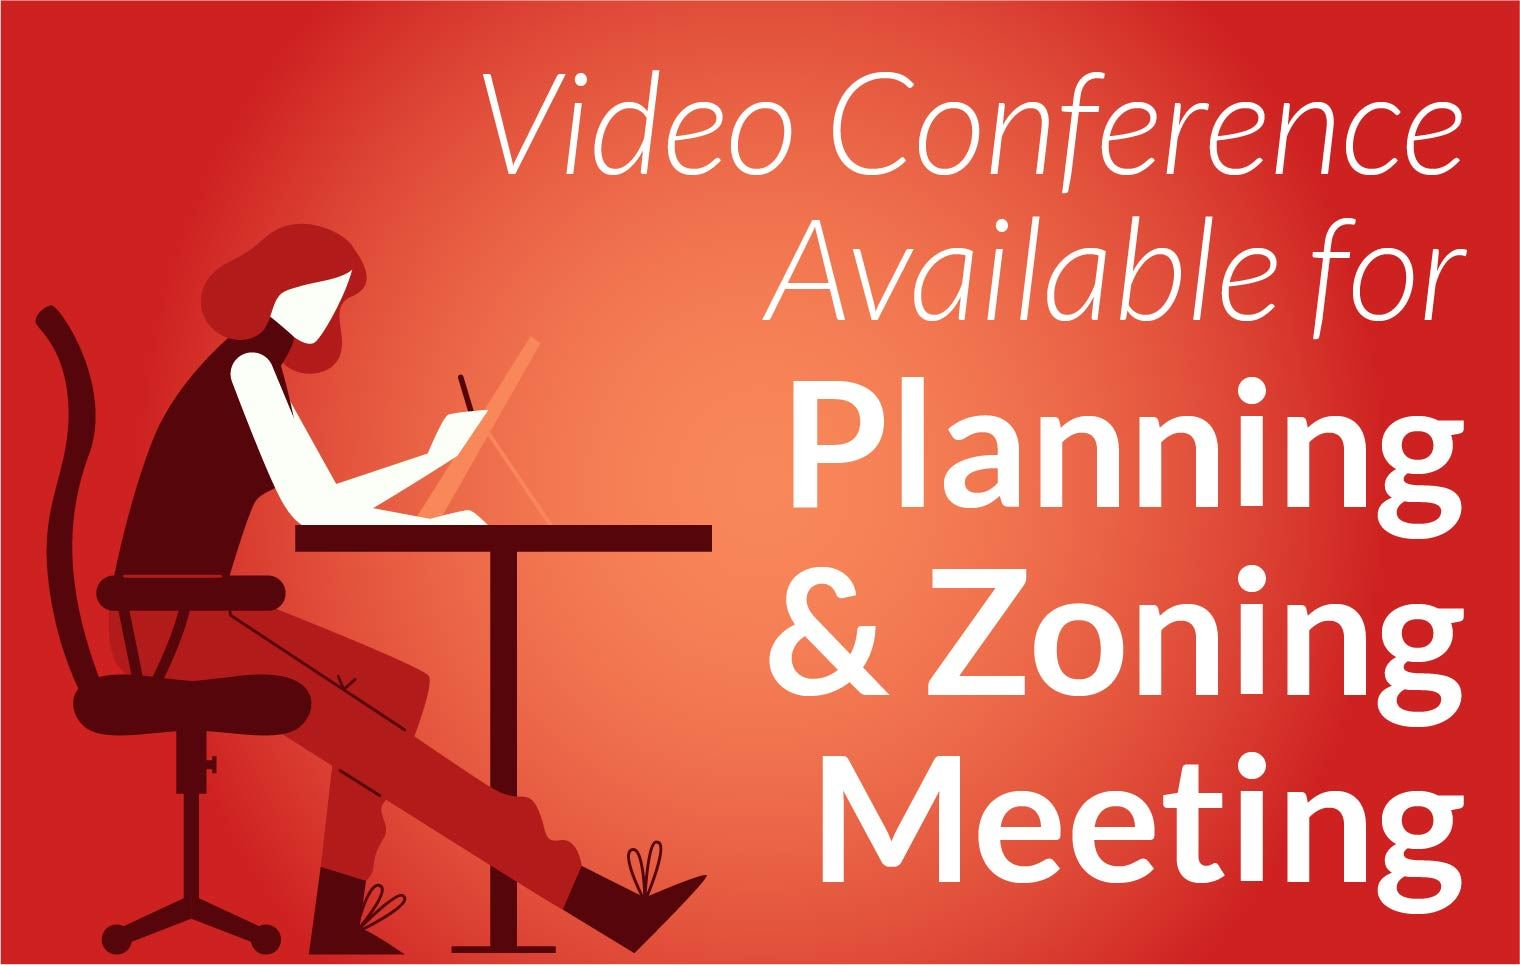 Video Conference Available for Planning and Zoning Meeting